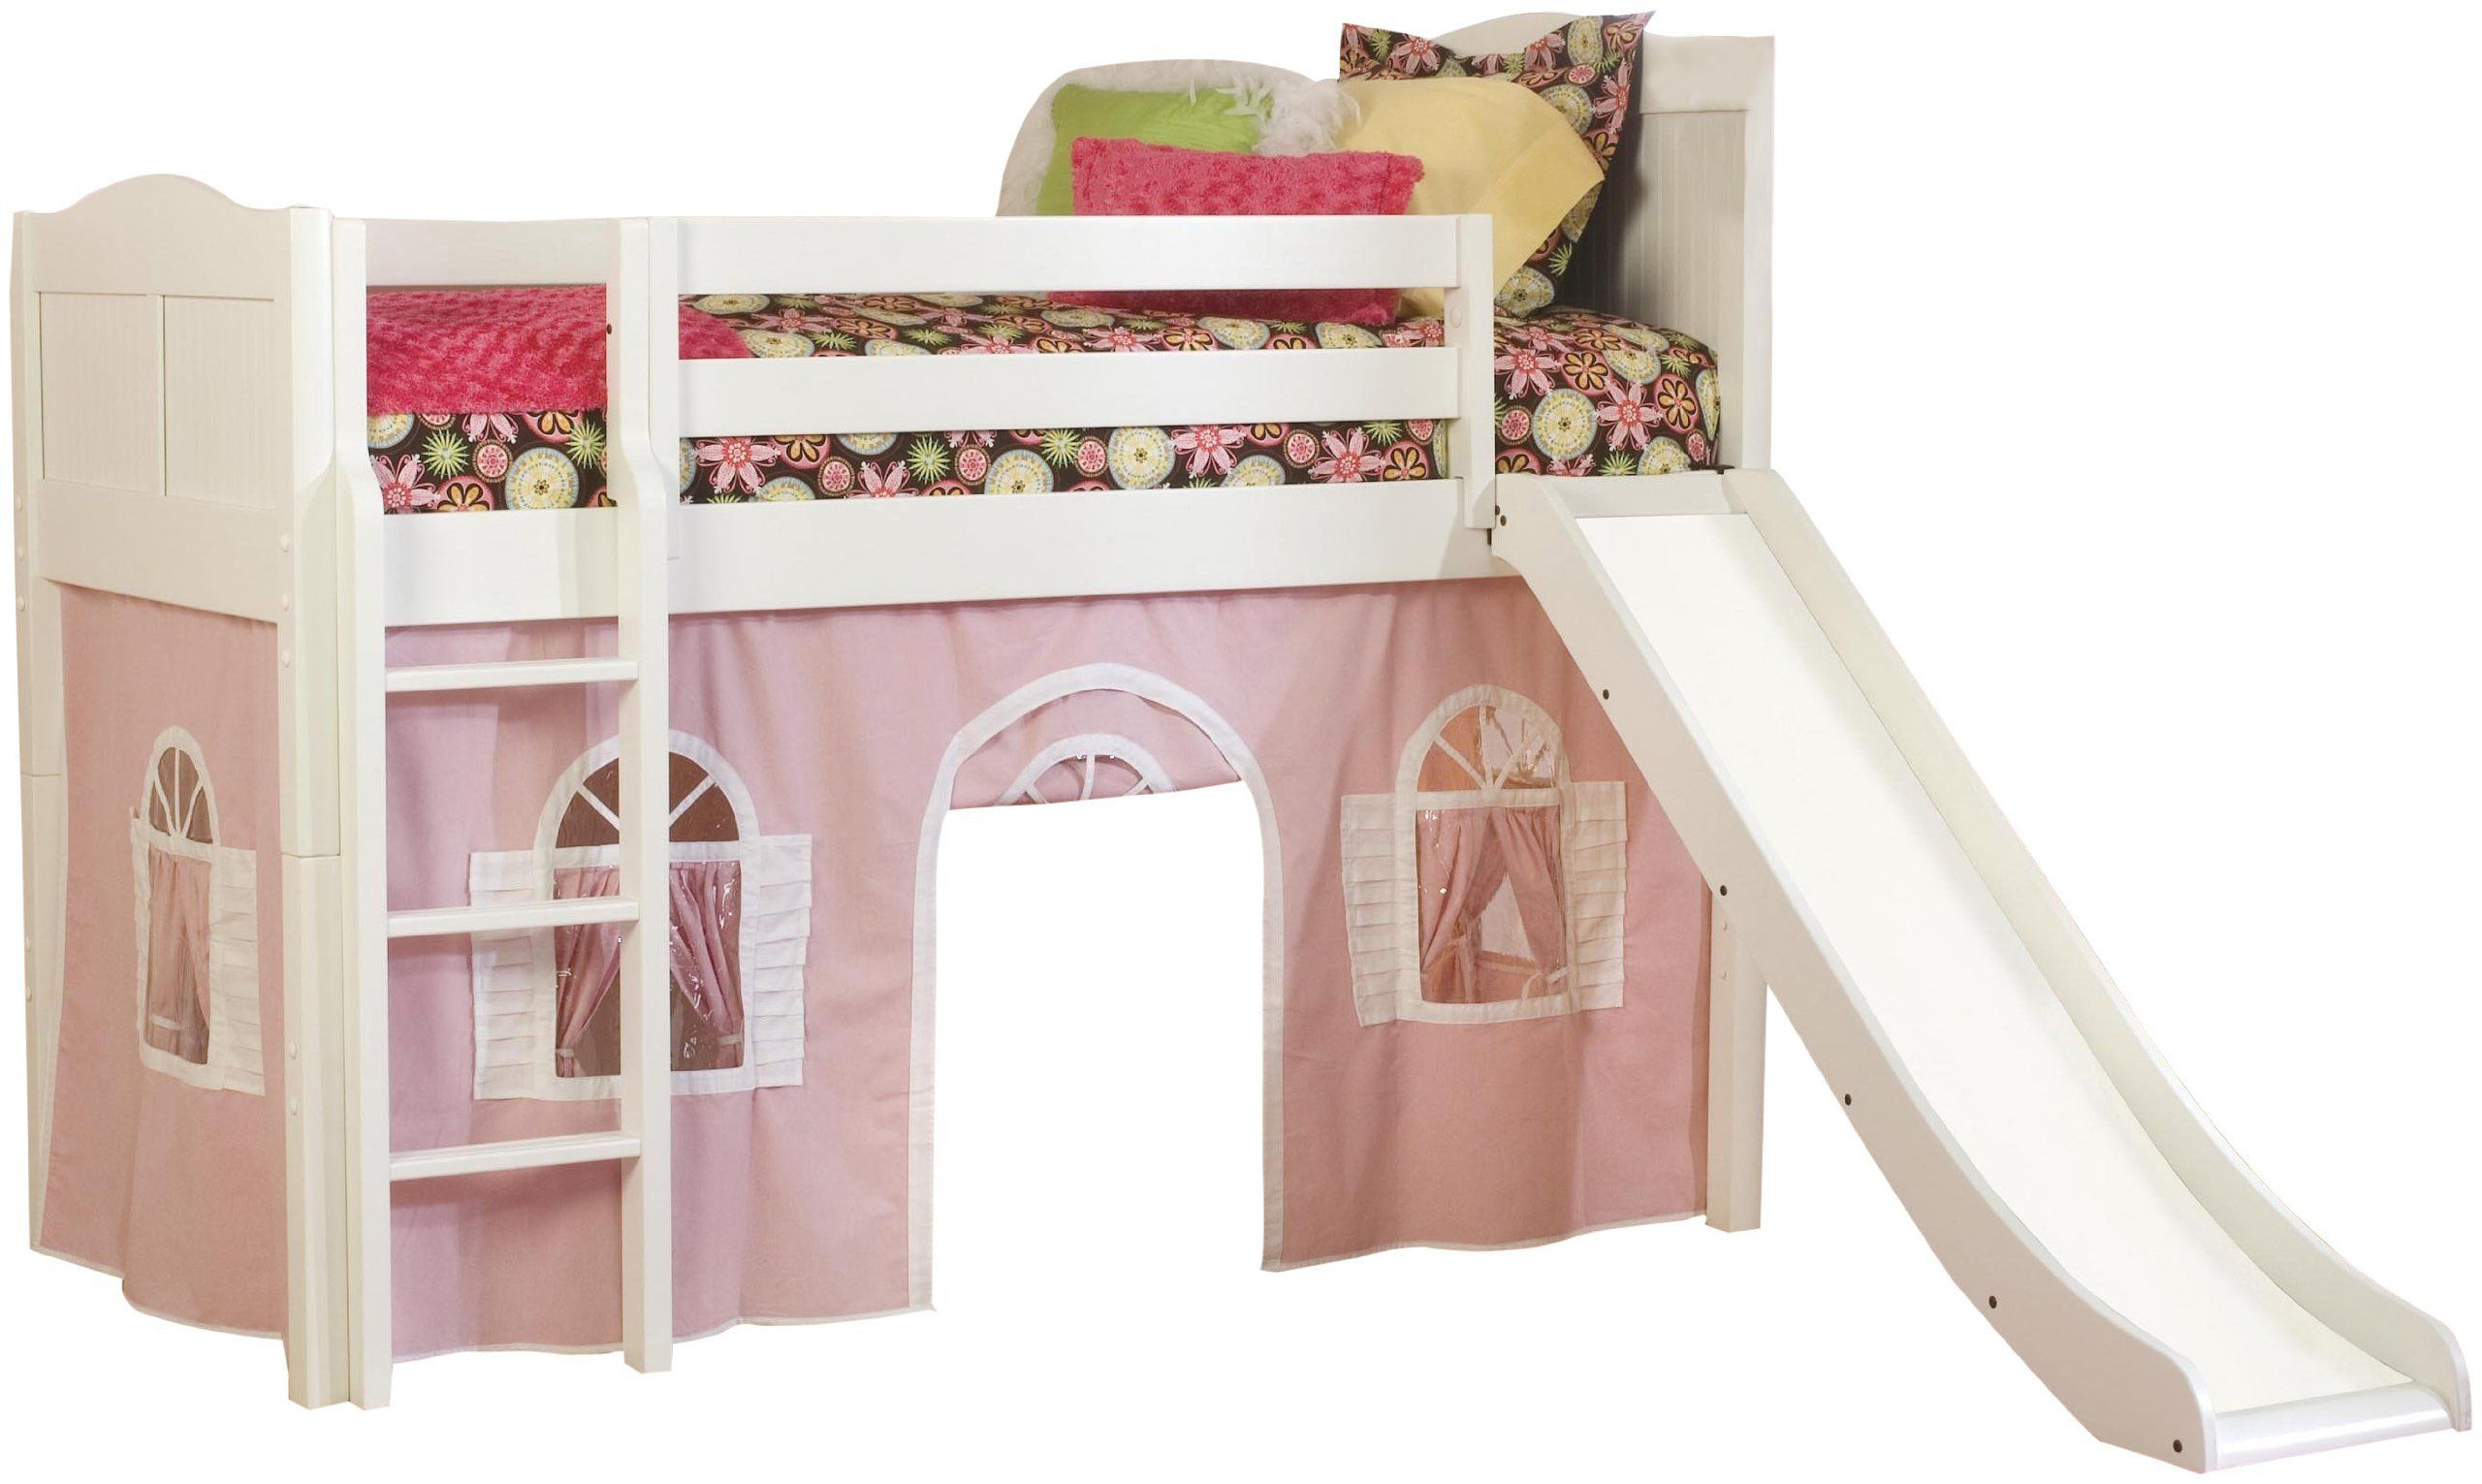 Funny play beds for cool kids - Pink White Kids Bunk Beds Slide Tent Design Cool Kid Beds Funny Play Beds Cool Kids